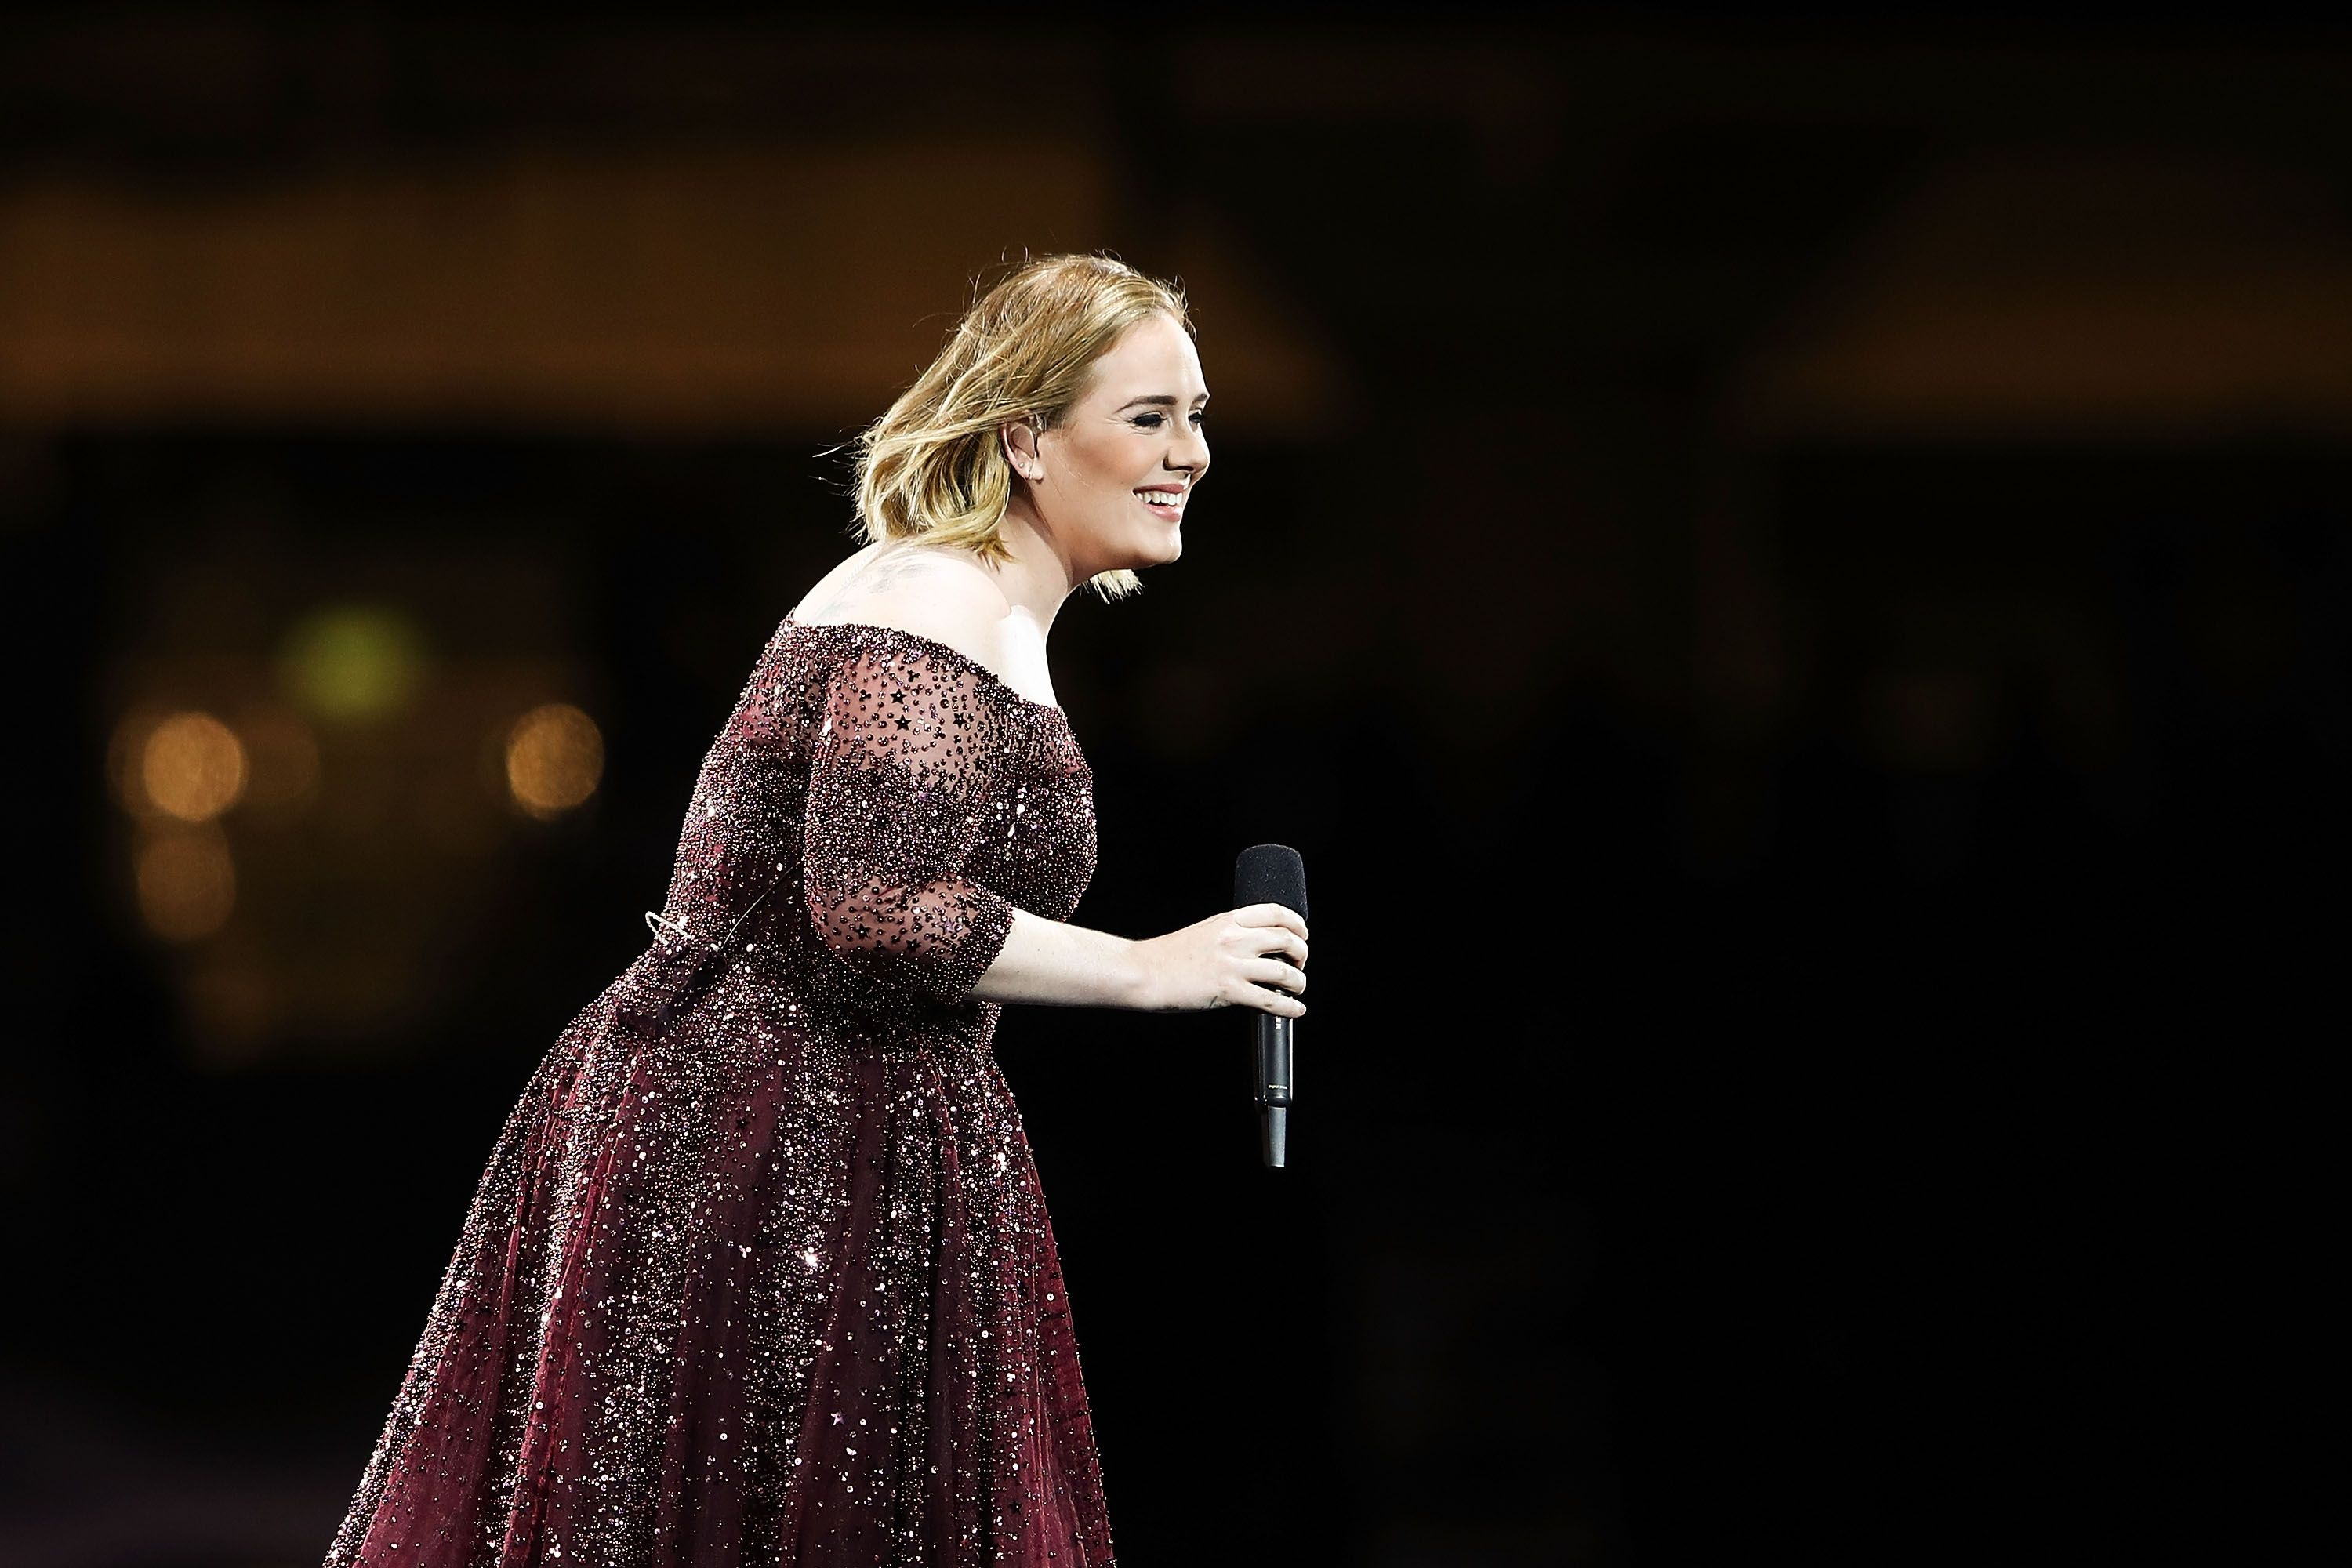 Adele Officiated Her Friend's Wedding in London and Provided the Entertainment, Too